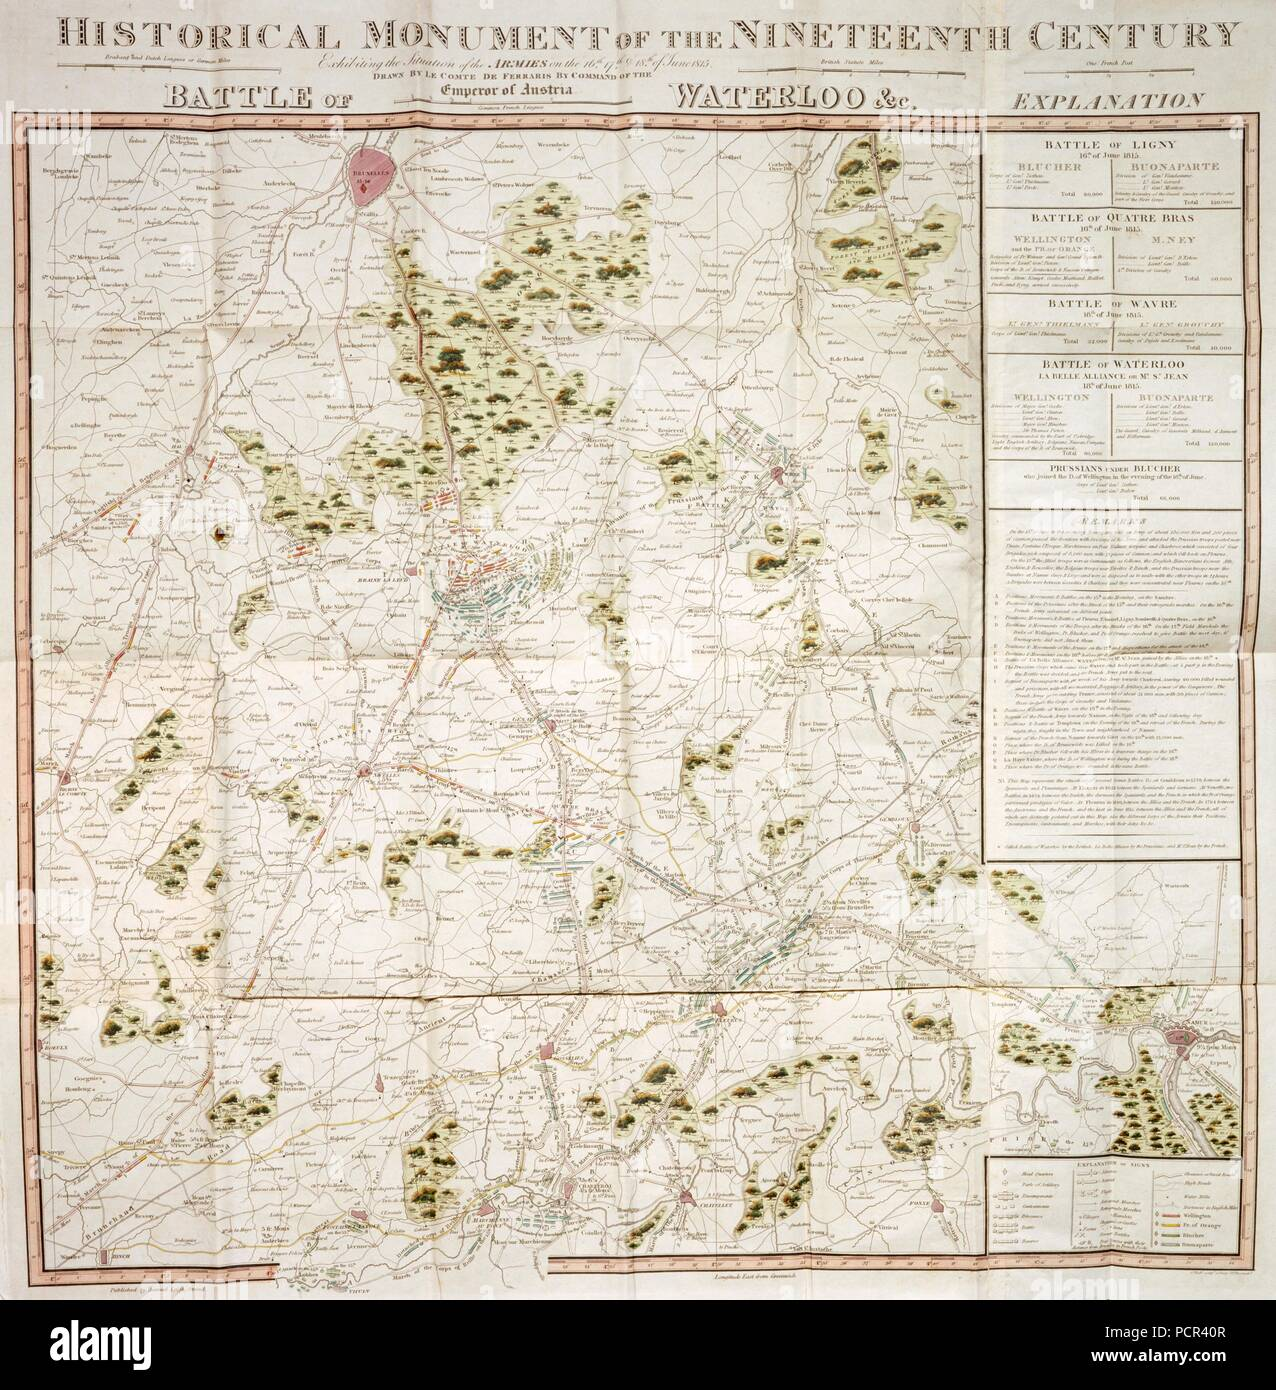 Map of the Waterloo campaign, 1815, Walmer Castle, Kent. Map Exhibiting the Situation of the Armies on the 16, 17 & 18 of June 1815. The Battle of Ligny, Quatre Bras, Waterloo and Wavre. - Stock Image